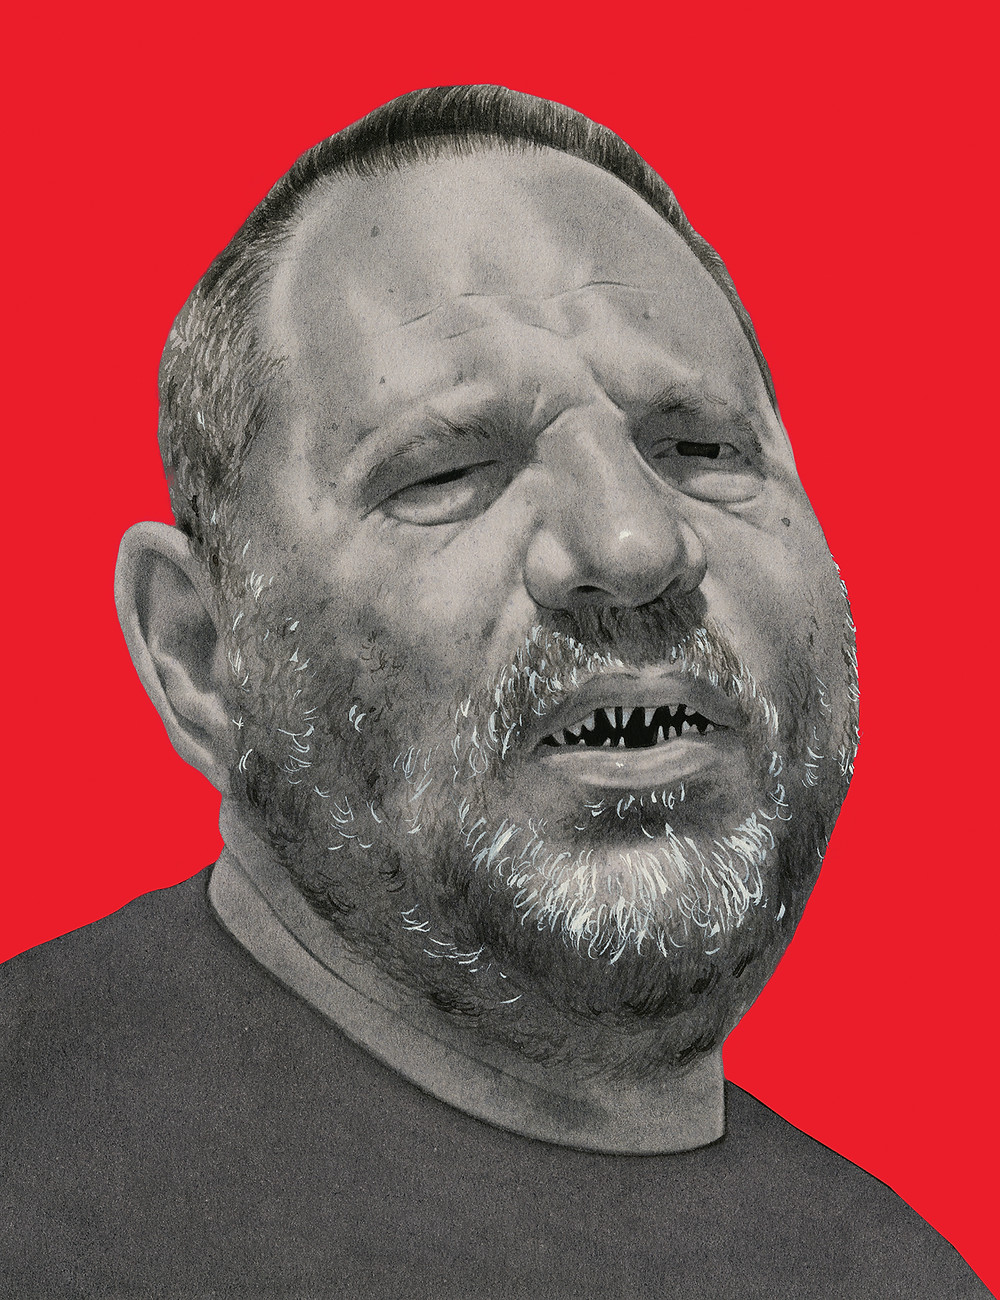 Harvey Weinstein Exposed